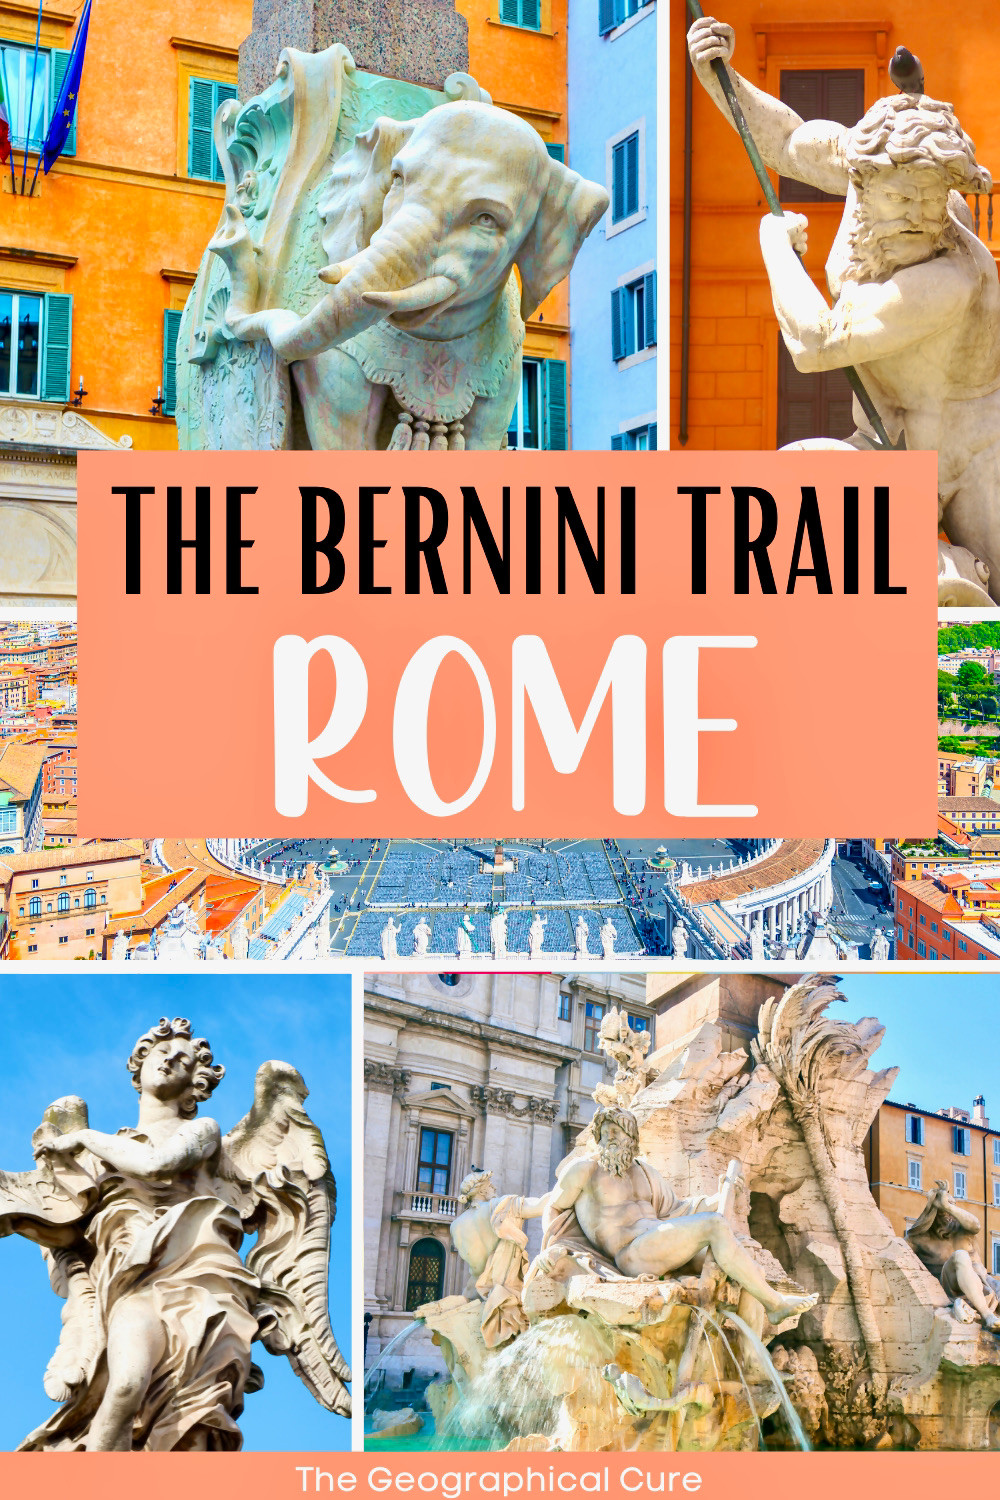 ultimate guide to finding Bernini's art and sculpture in Rome Italy